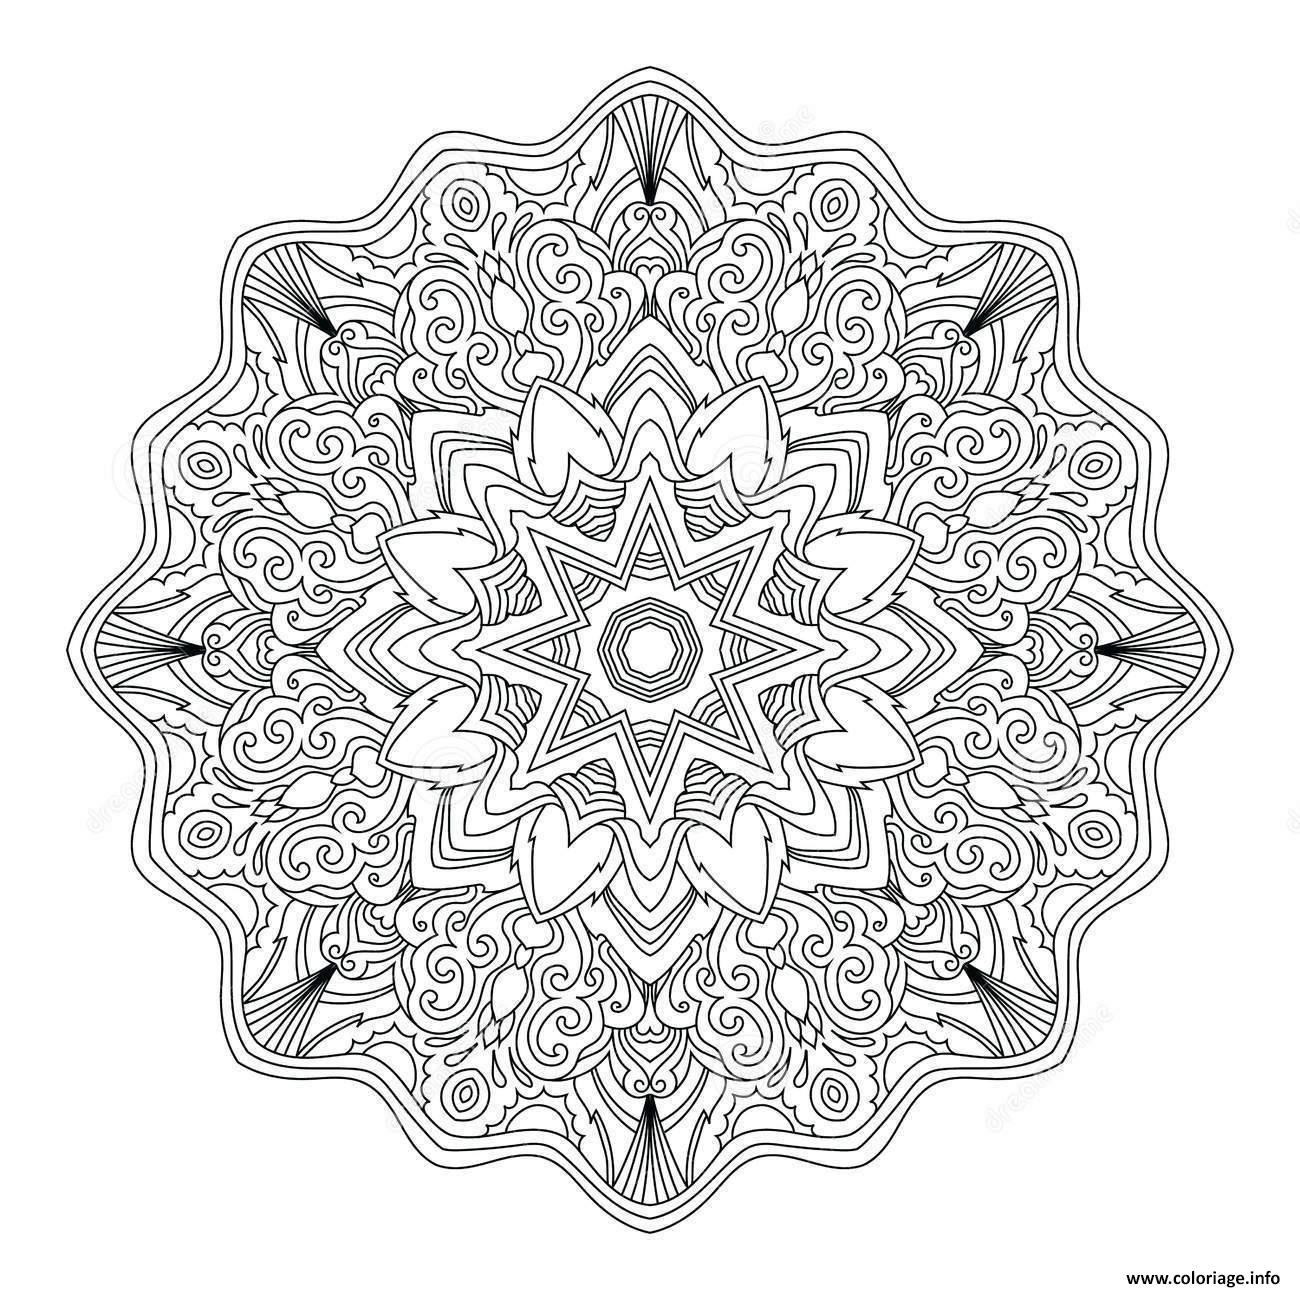 Coloriage mandala adulte abstrait art therapie dessin - Coloriage art ...